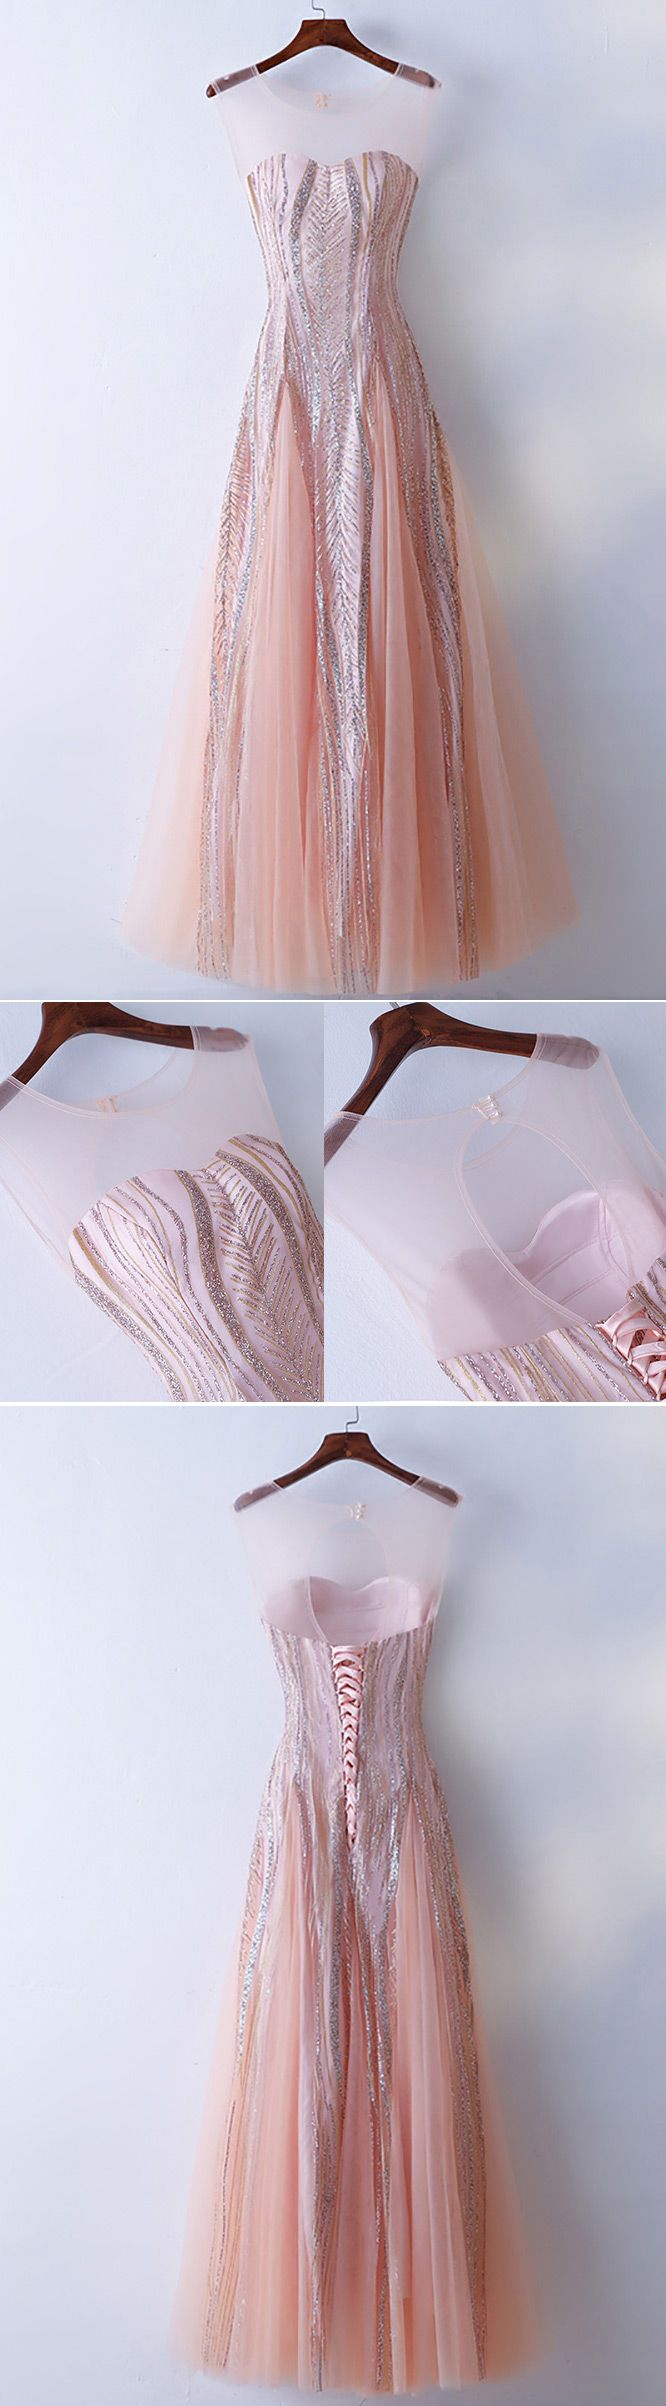 Only $118, Prom Dresses Unique Illusion Neckline Sparkly Pink Prom Dress Long Tulle #MYX18006 at #GemGrace. View more special Prom Dresses,Homecoming Dresses now? GemGrace is a solution for those who want to buy delicate gowns with affordable prices, a solution for those who have unique ideas about their gowns. Get limited $10 off now, free shipping!